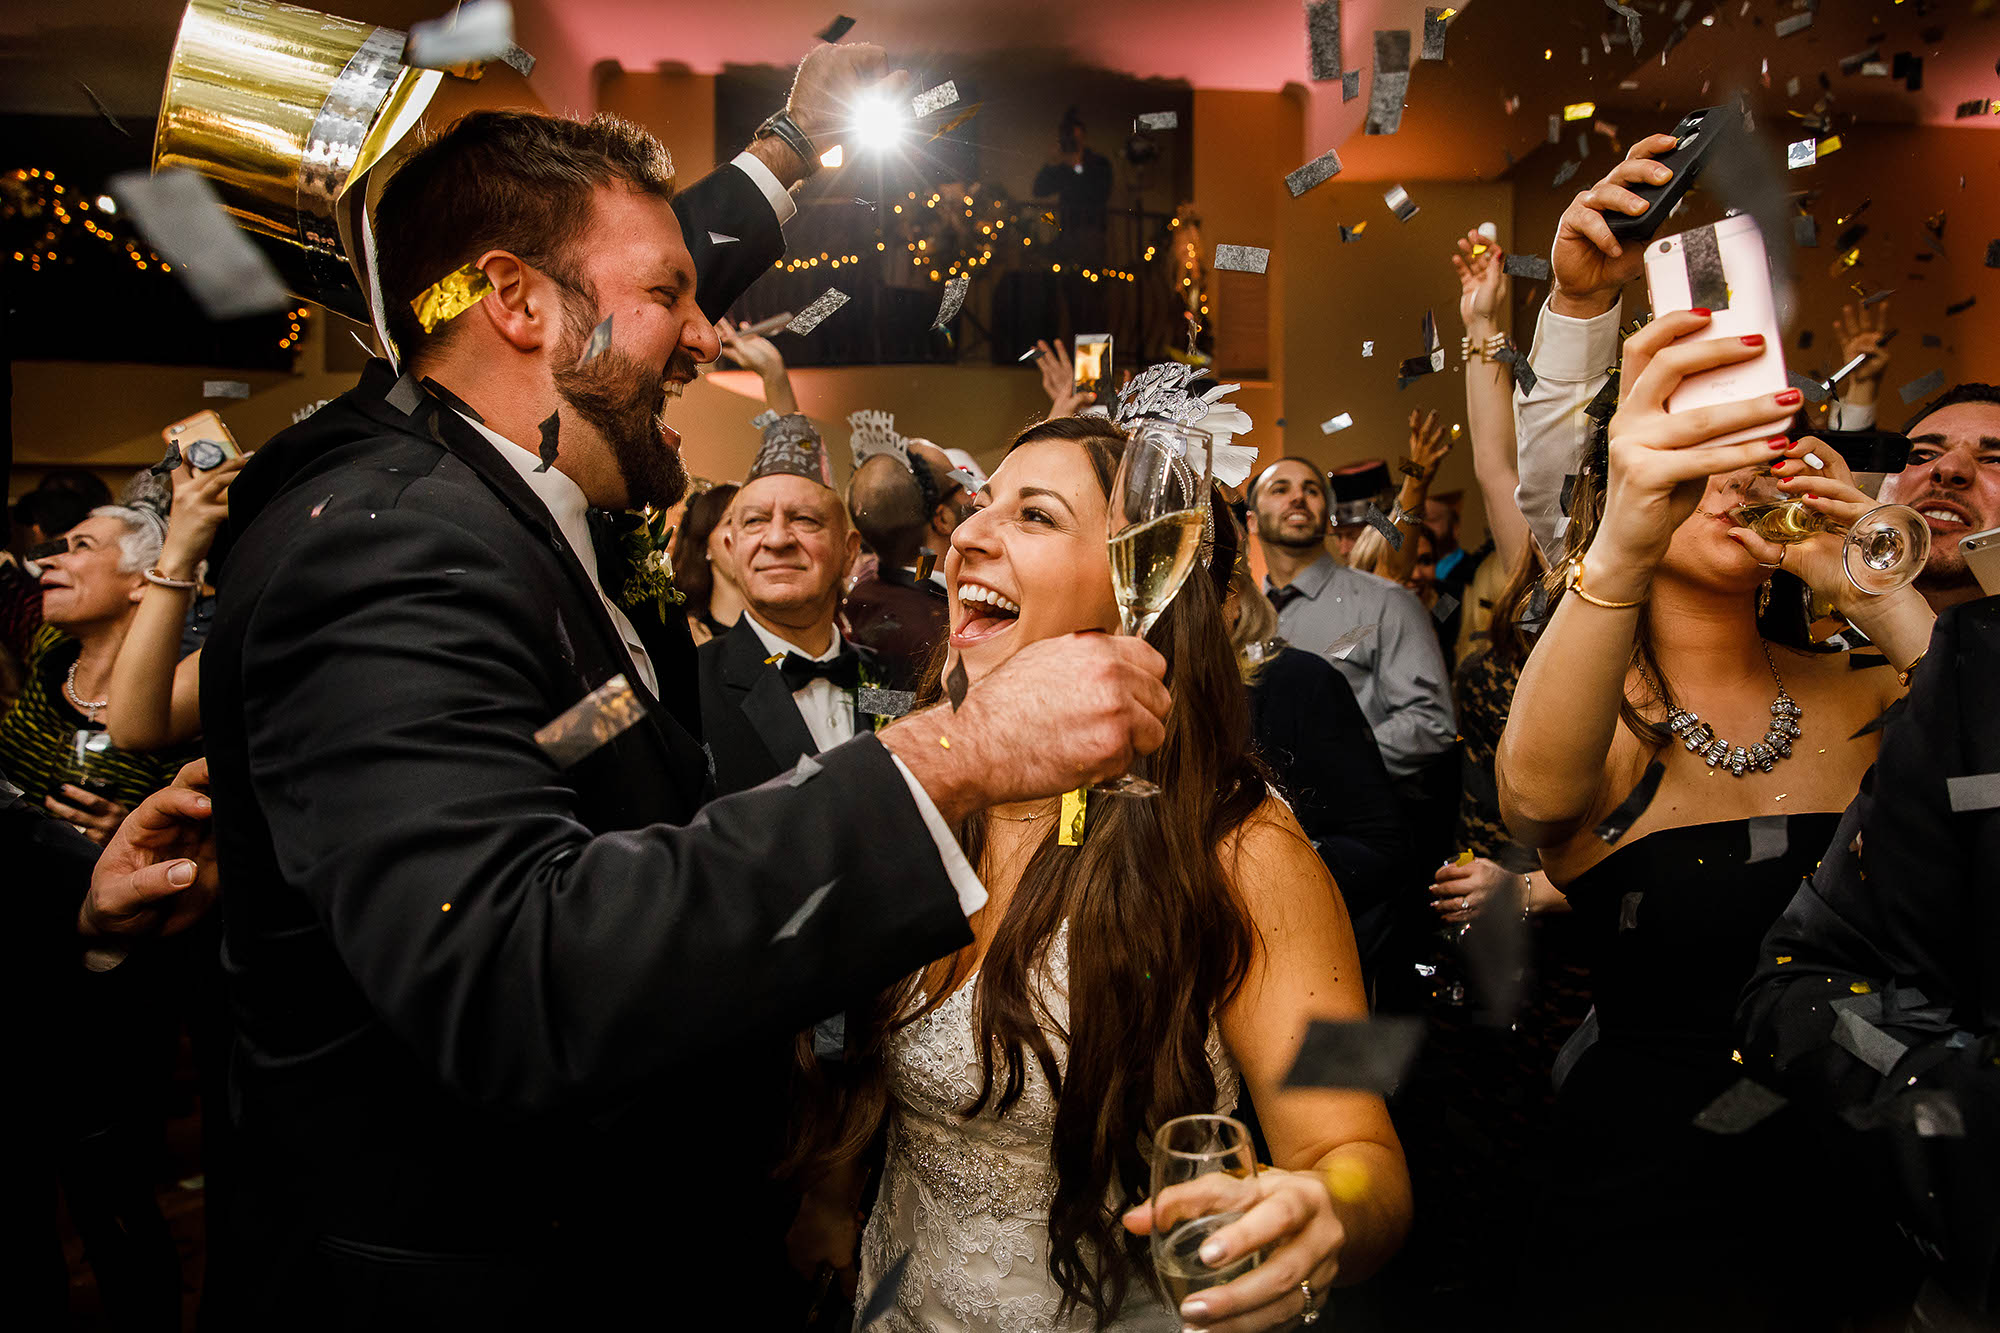 A happy bride and groom toast each other with champagne as confetti falls during their New Year's Eve wedding reception held at the Onesto Hotel located in downtown Canton, Ohio.